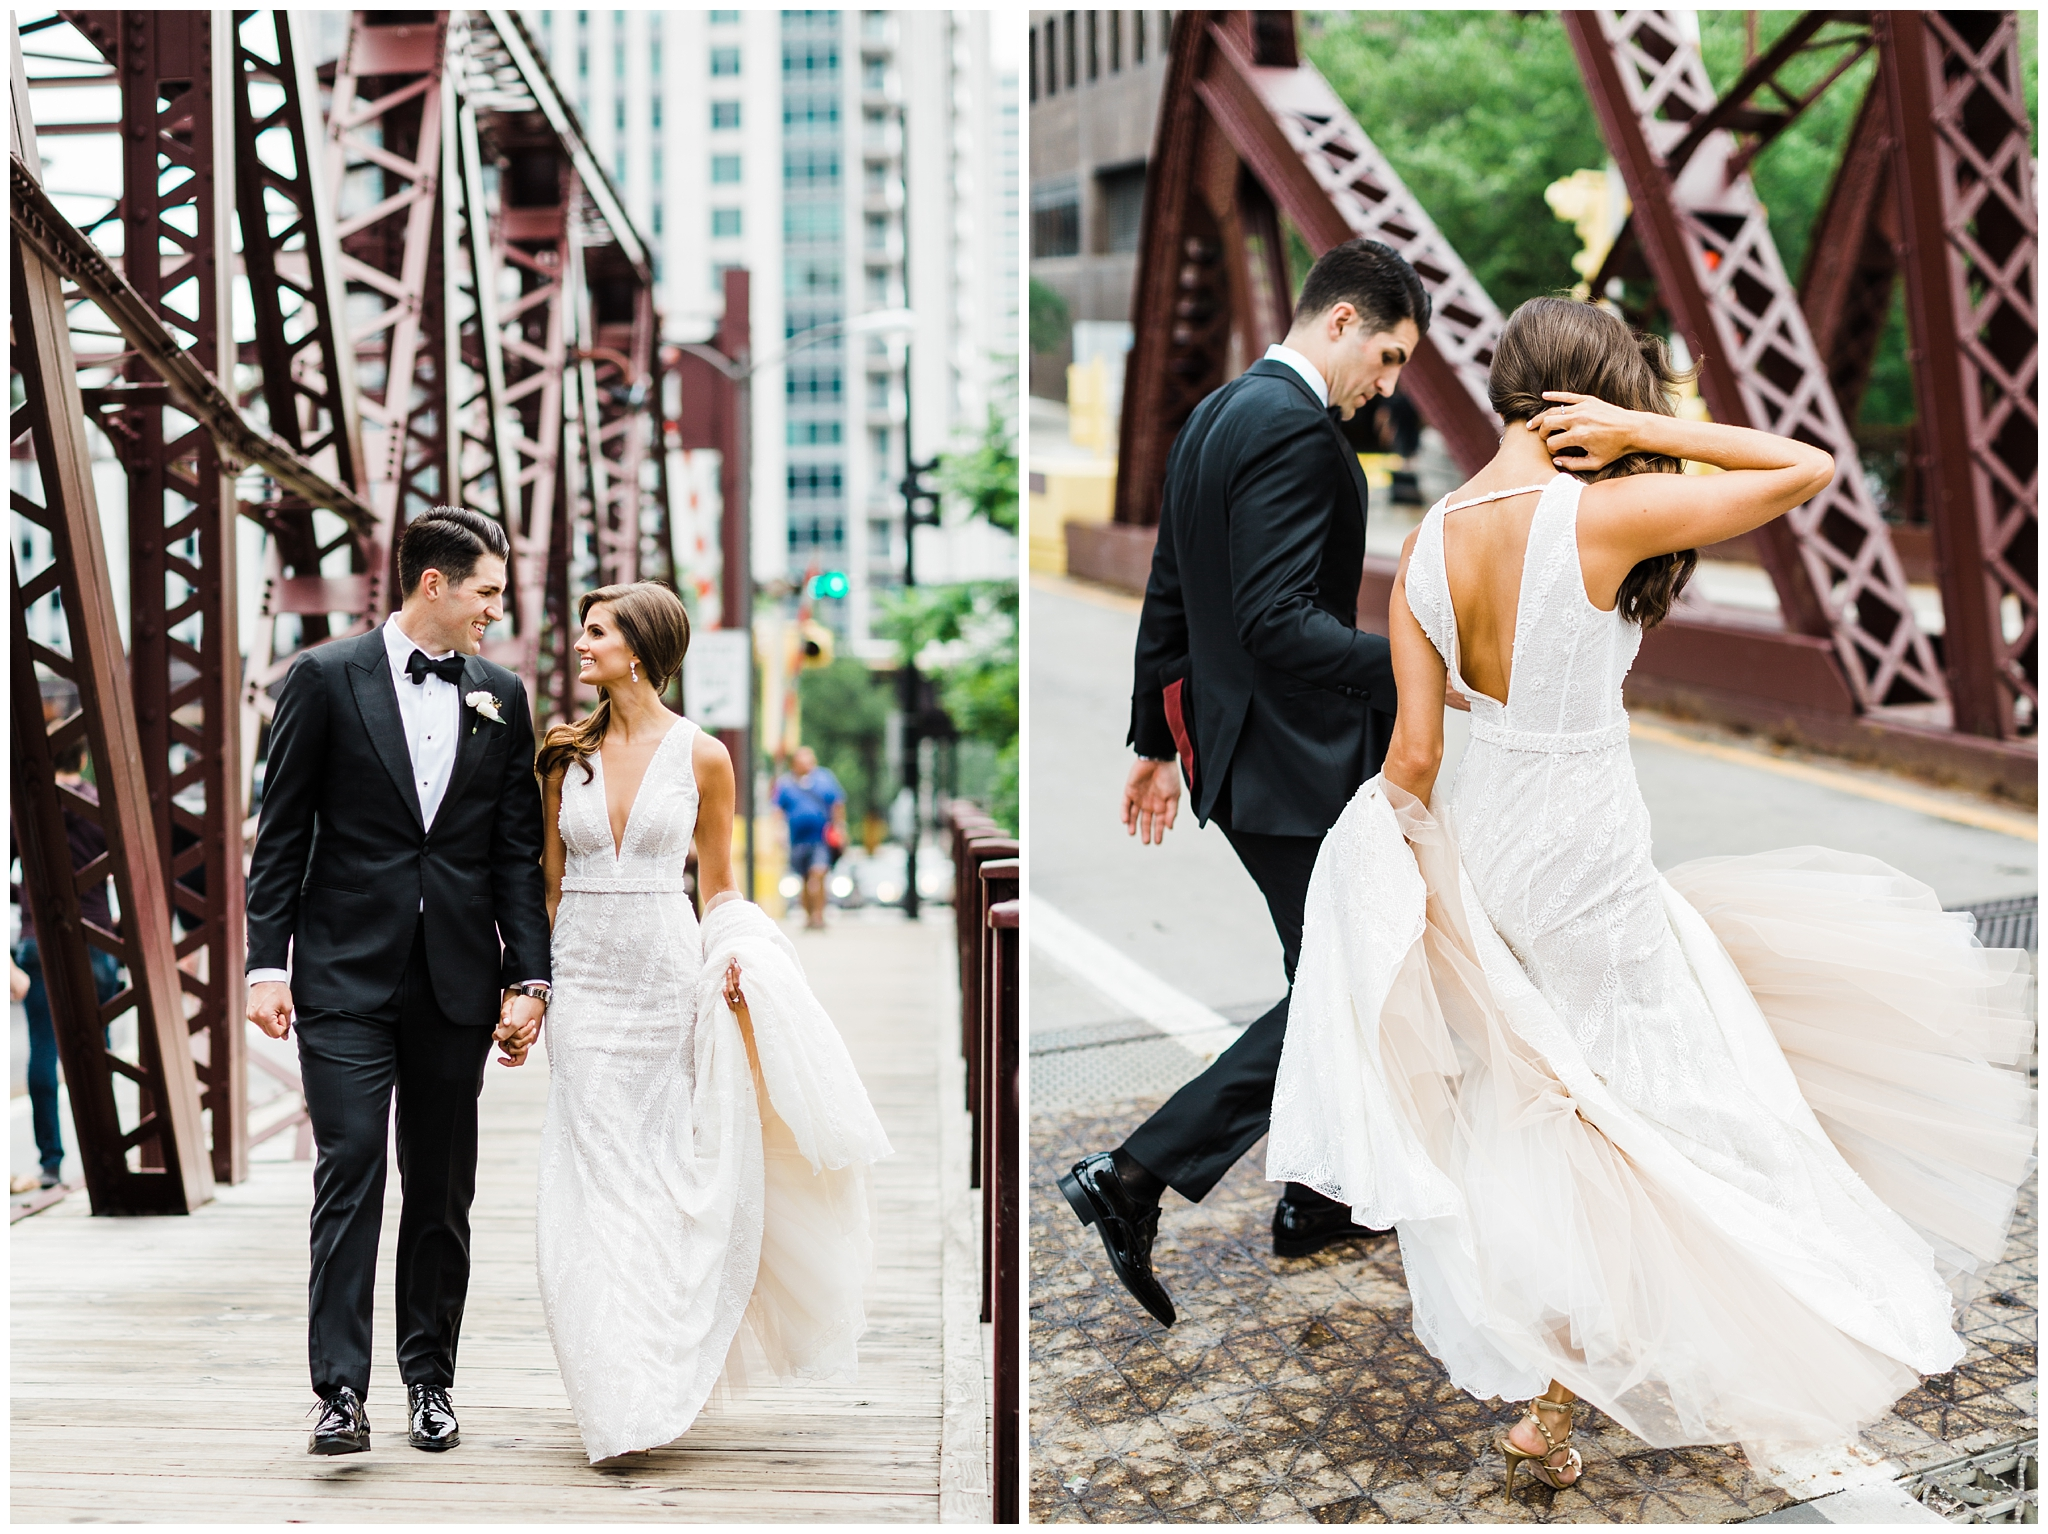 chicagoweddingphotographer_chicagowedding_ivyroomwedding_ivyroomchicago__0103.jpg